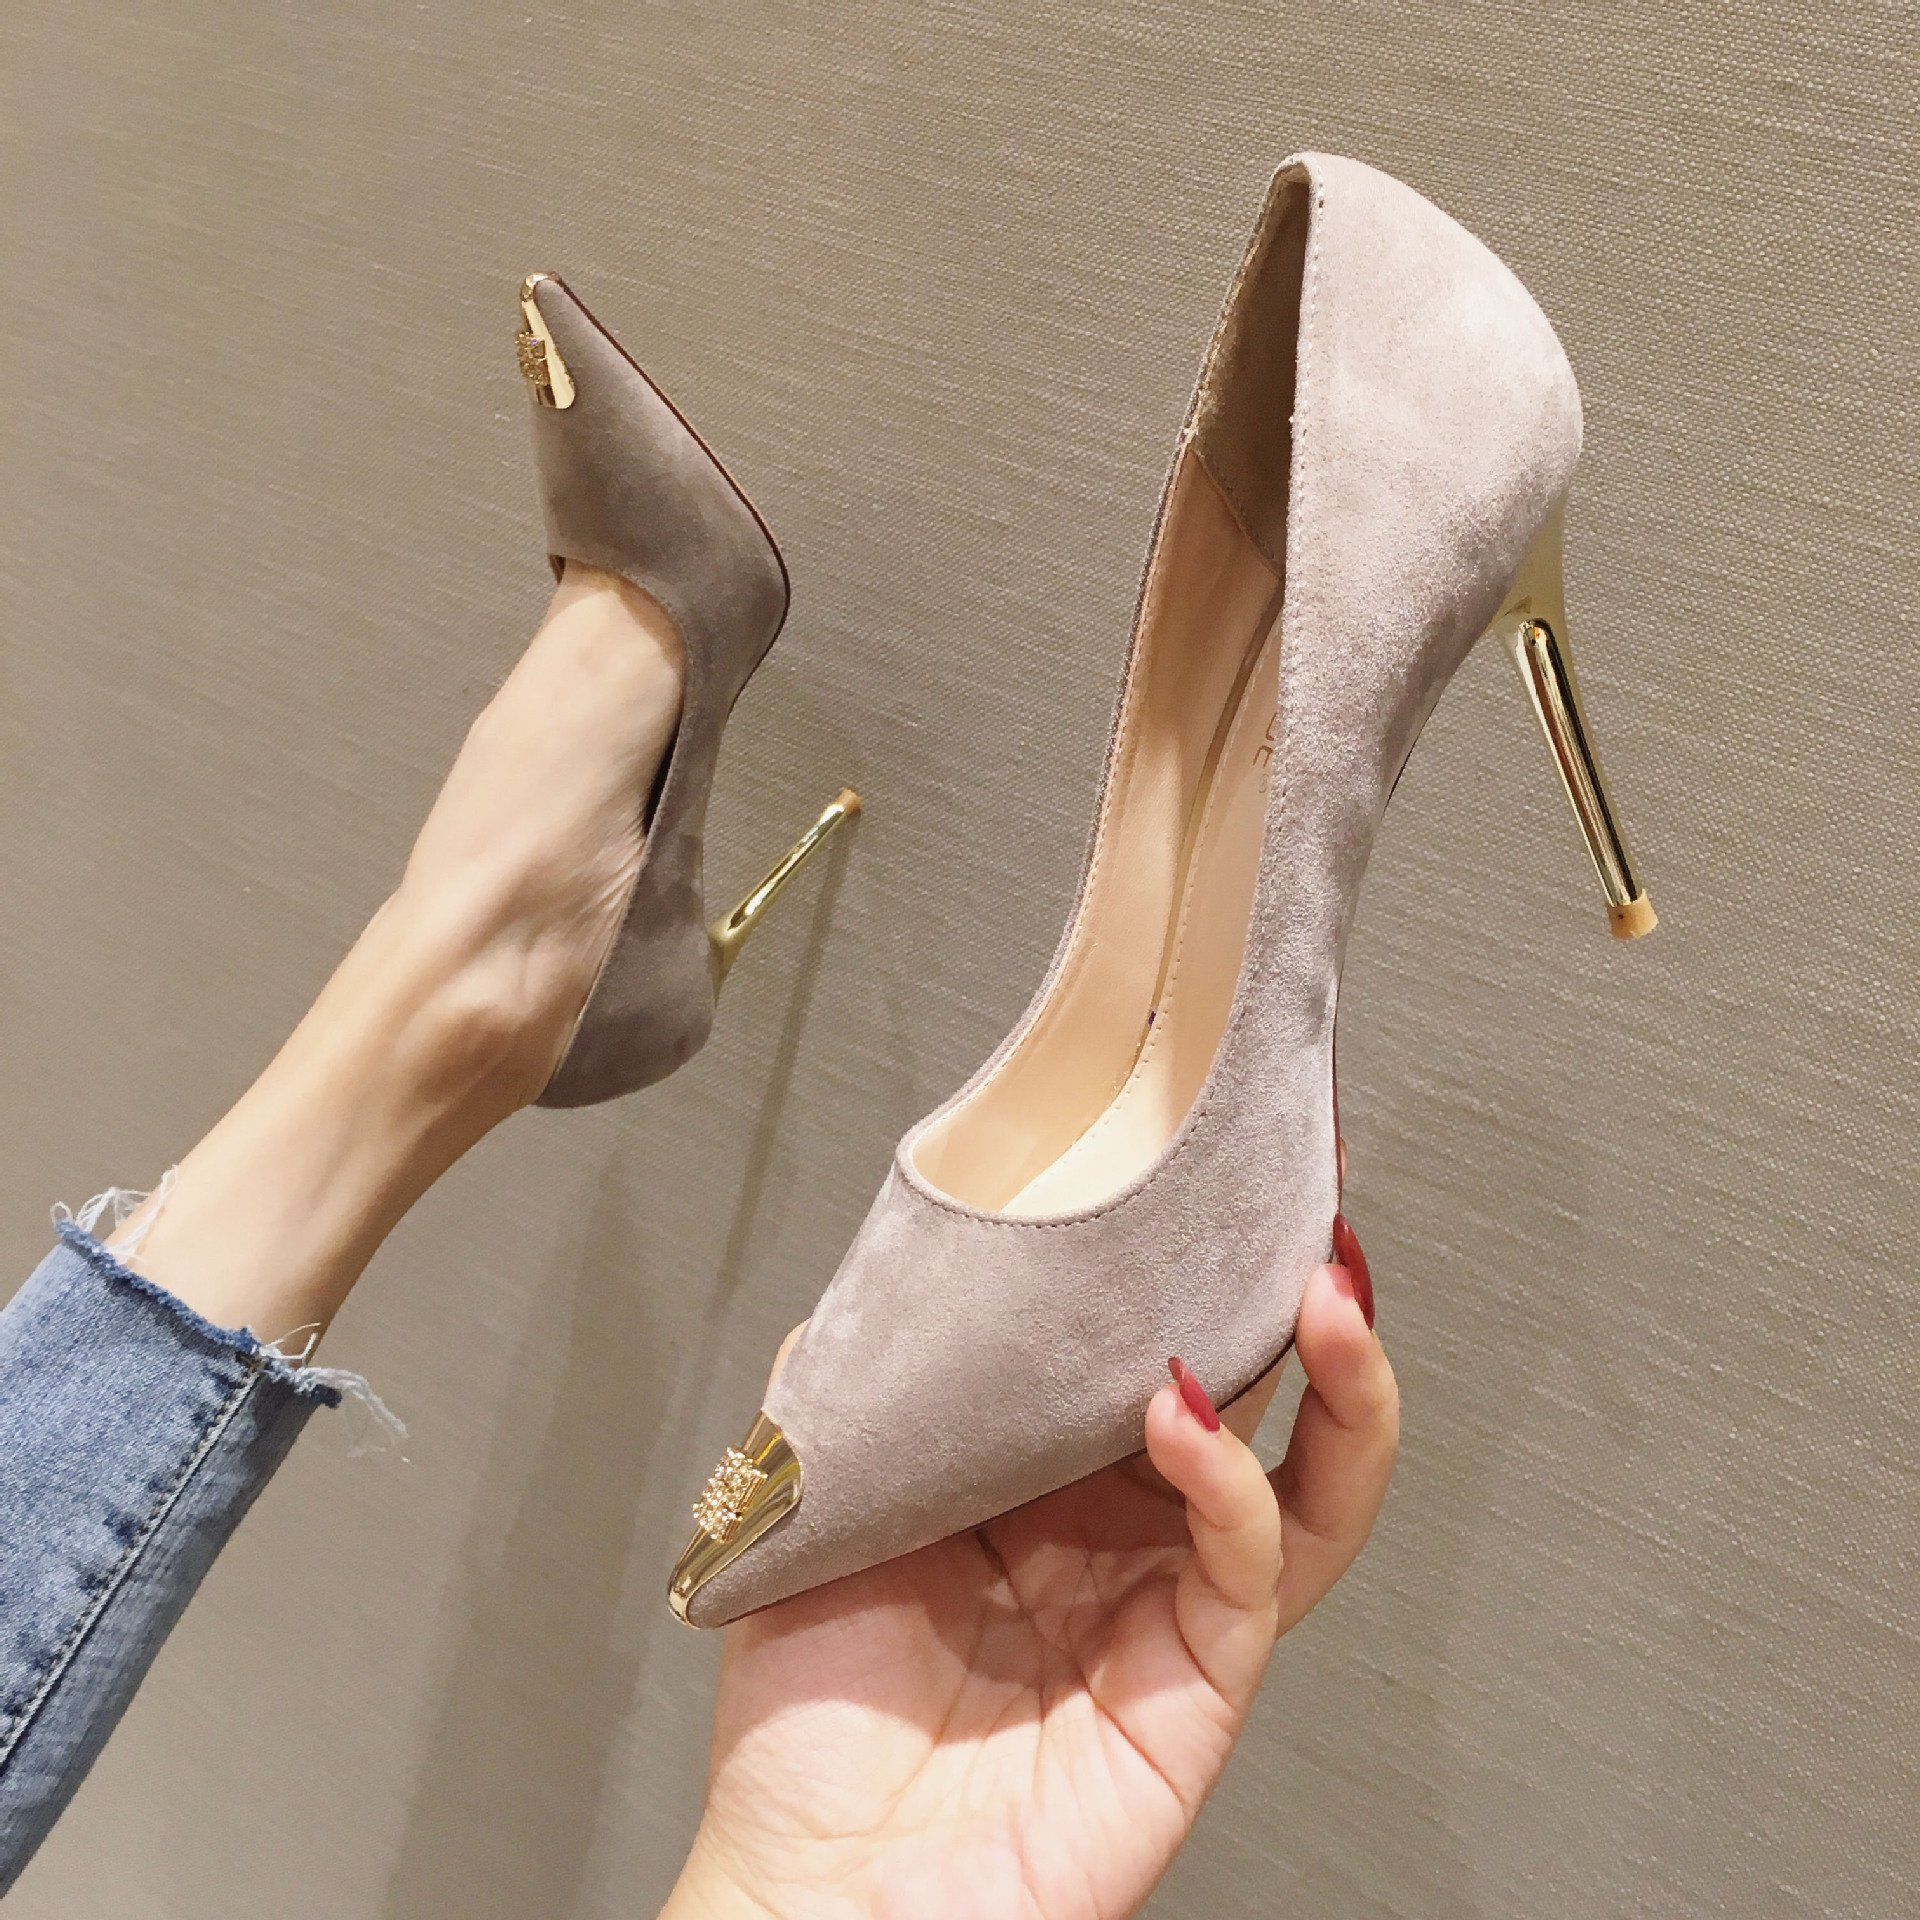 Trendy Women High Heels Yellow Sneakers Bonkerz Shoes Ladies Black Flat Shoes Peep Toe Heels Tie Up High Heels Blush Shoes